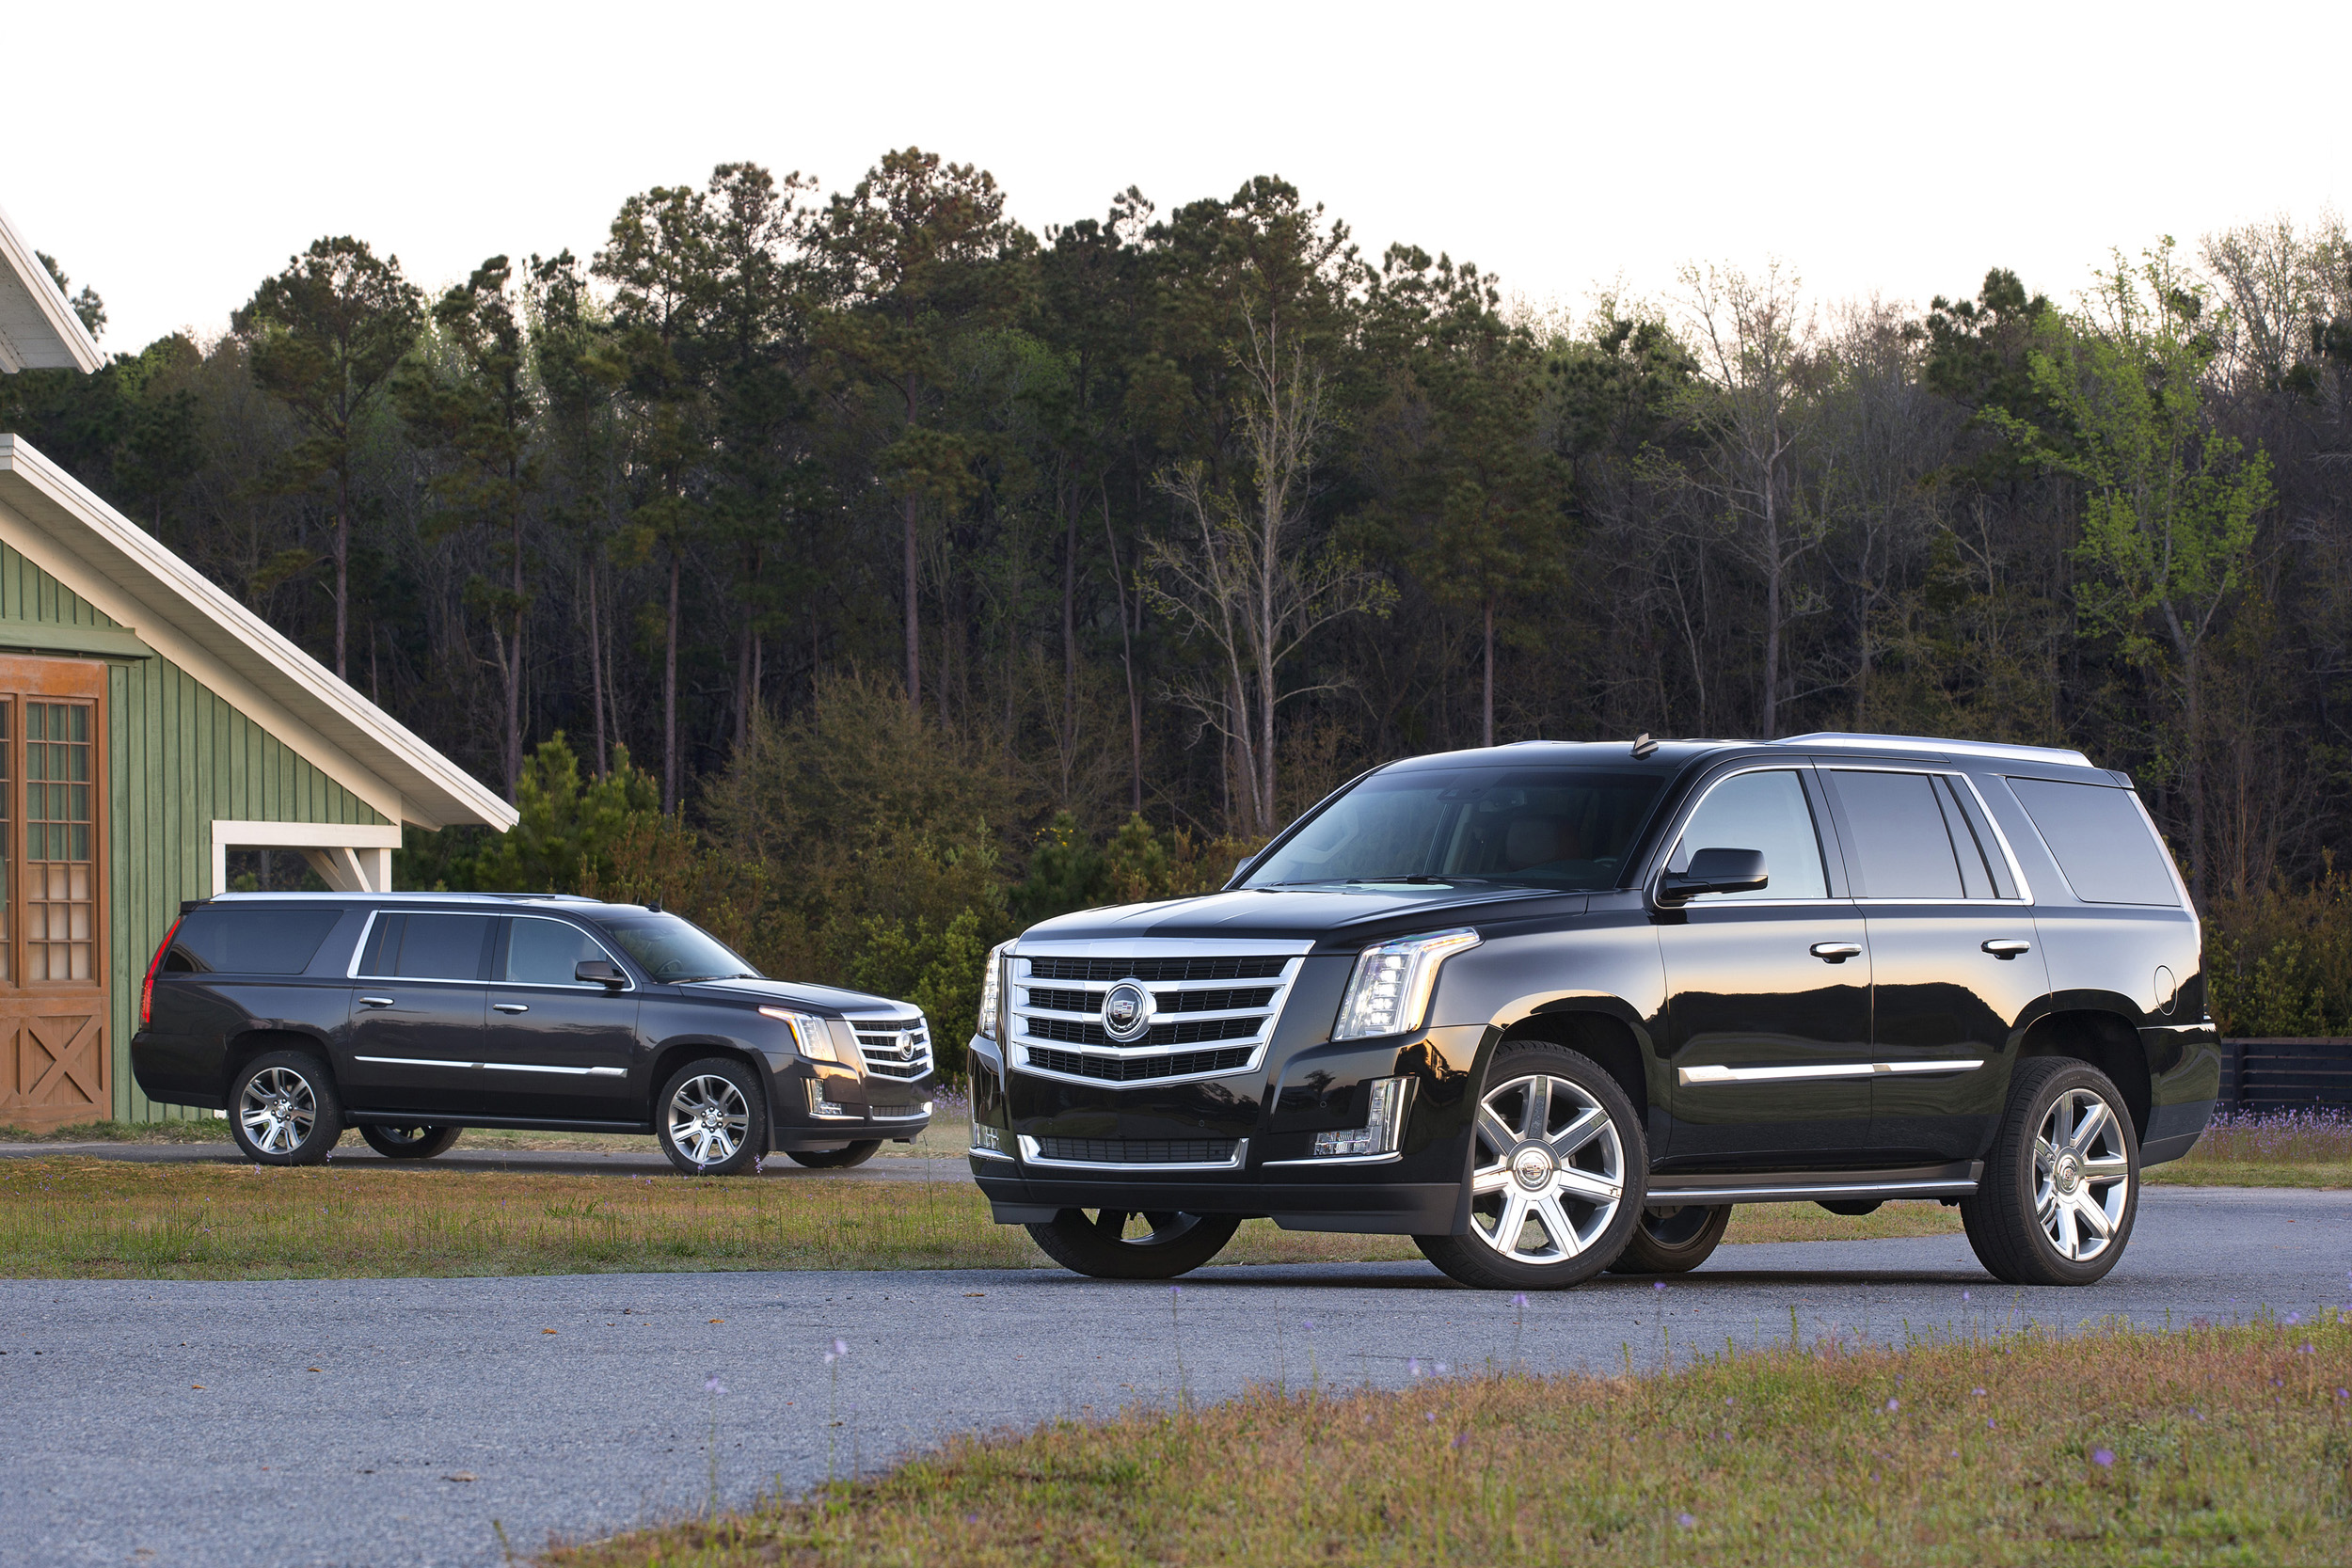 wallpaper and platinum esv other cadillac photos hd images escalade wallpapers